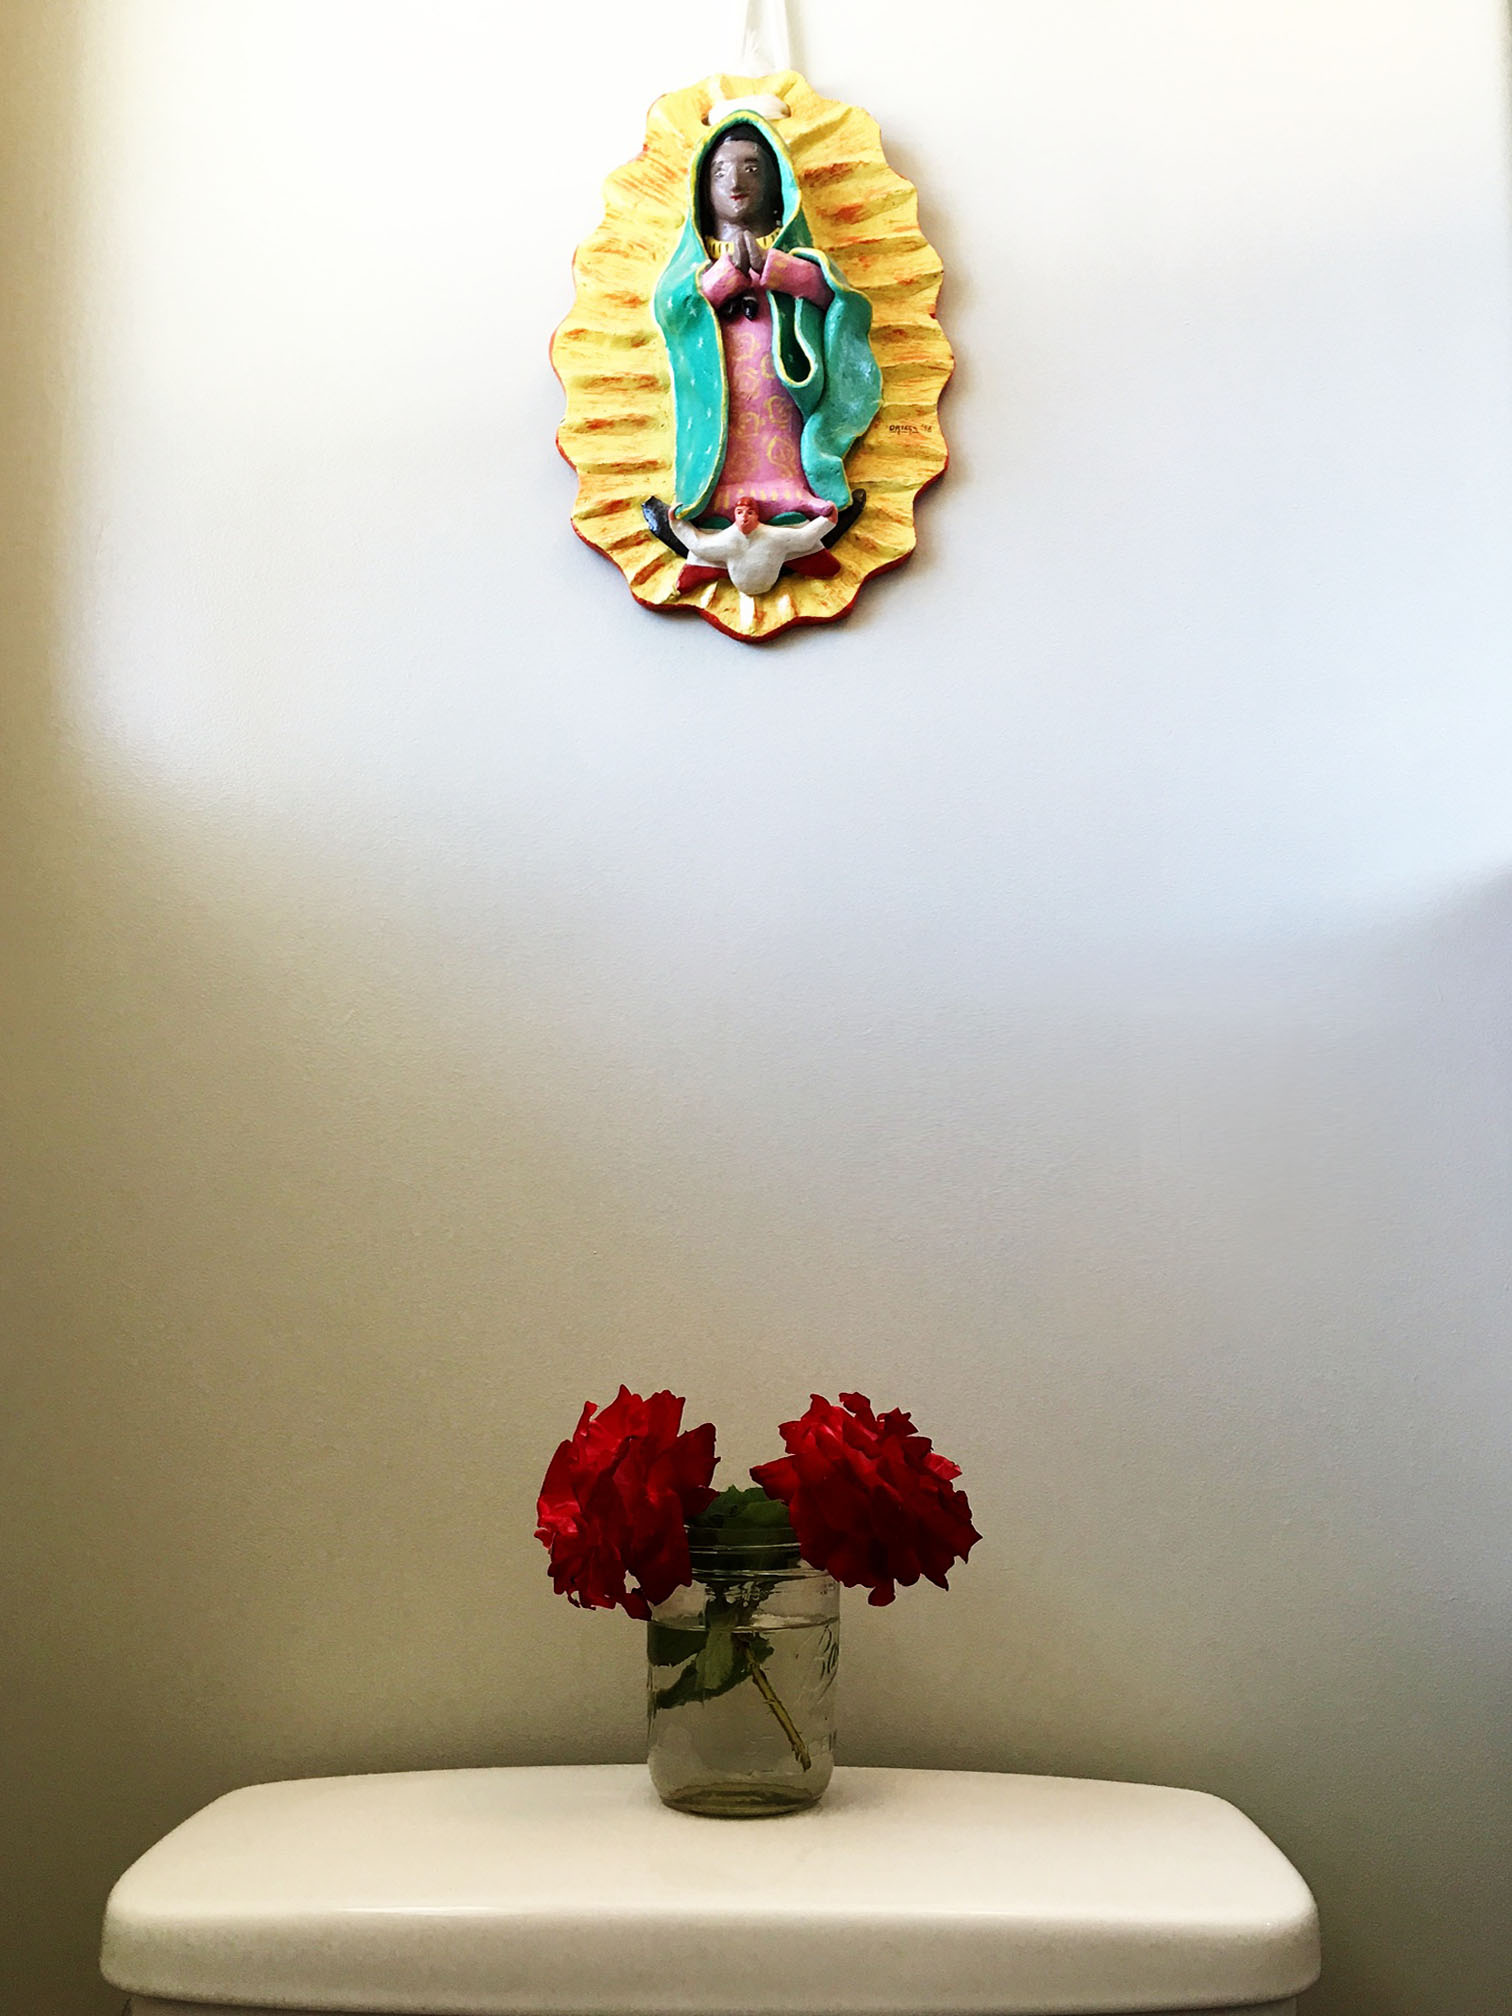 Here's my beloved black Lady of Guadalupe. One of my treasures from when we lived in Mexico.